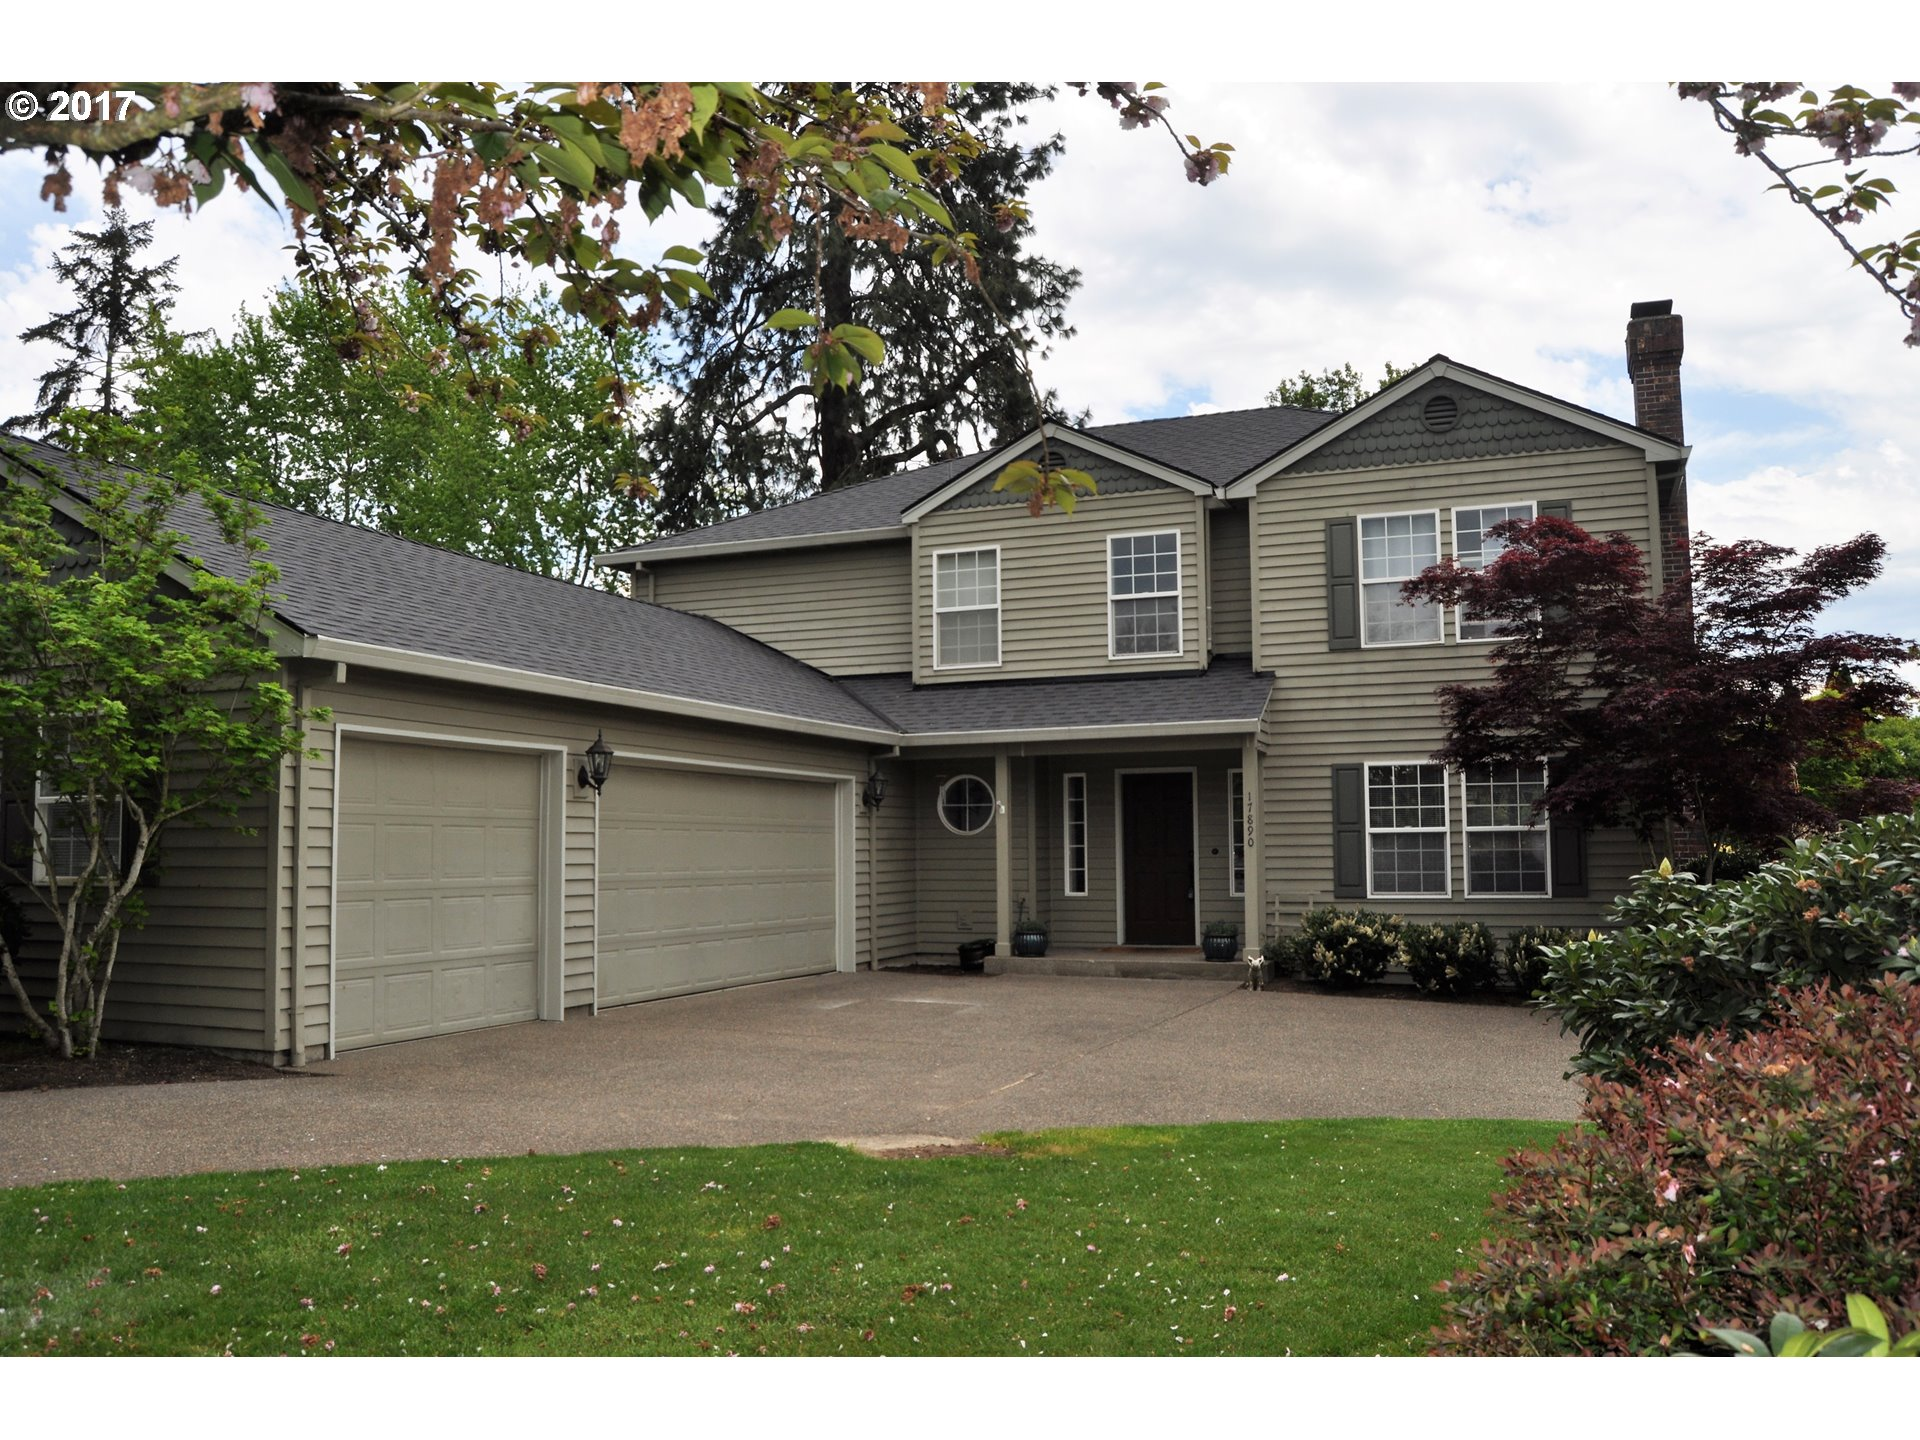 17890 SW 110TH AVE, Tualatin, OR 97062